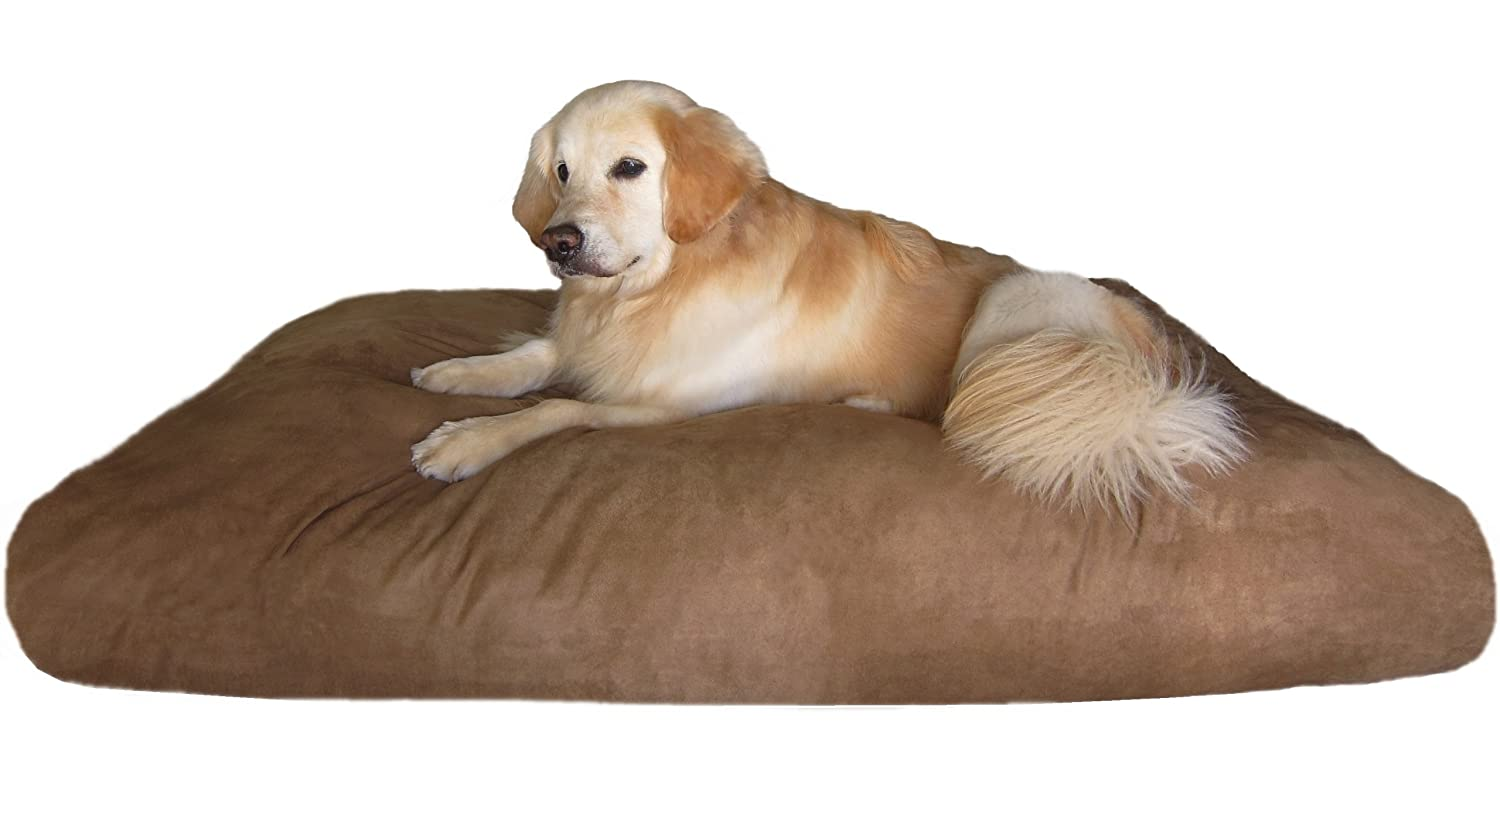 amazoncom dogbed4less xxl extra large memory foam dog bed pillow with waterproof liner and brown microsuede cover for large pet 55x37 inches xl dog bed - Dog Beds For Large Dogs